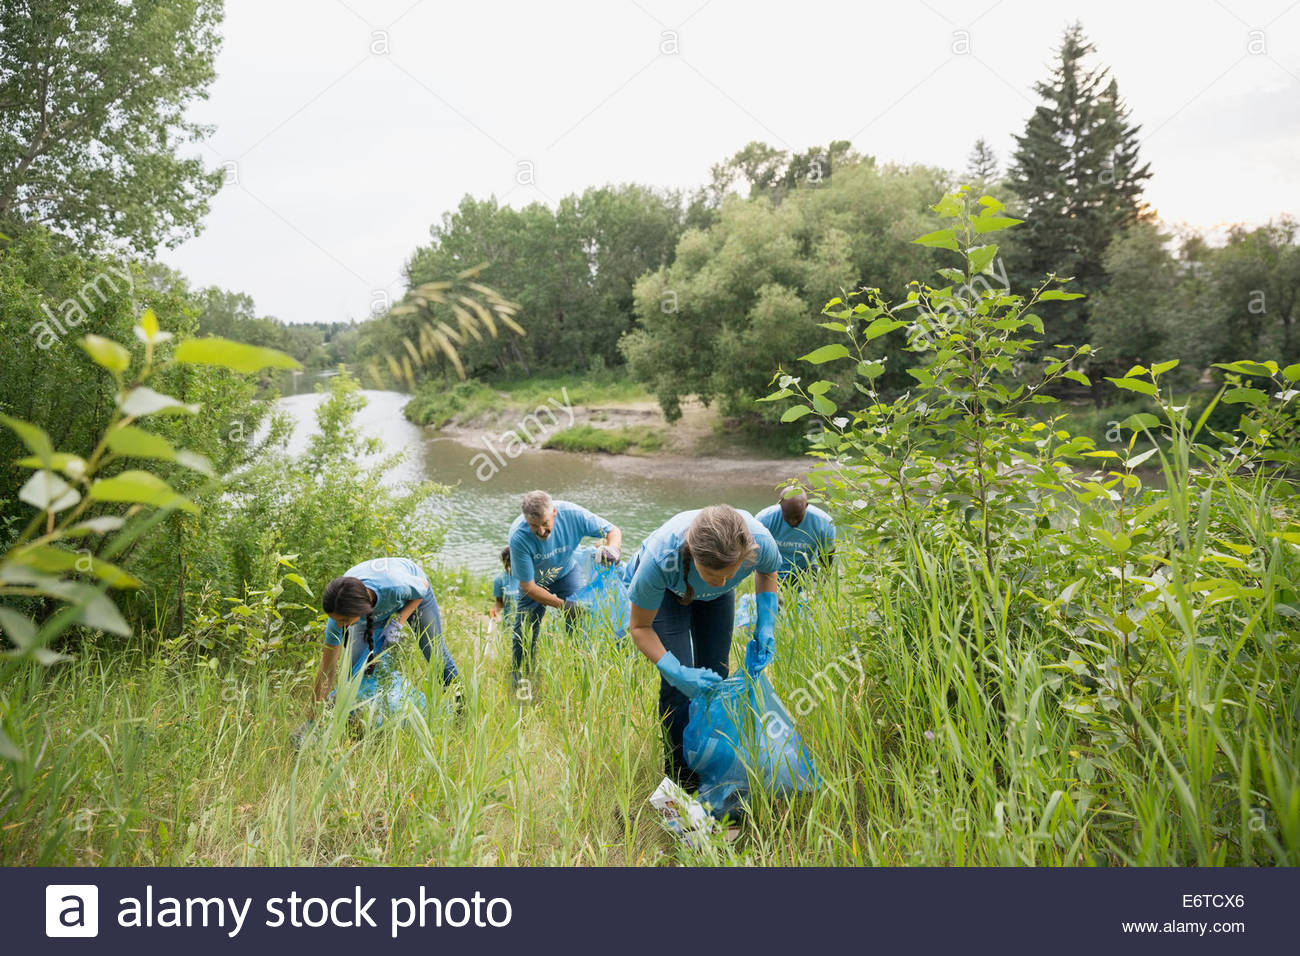 Volunteers picking up garbage in field - Stock Image